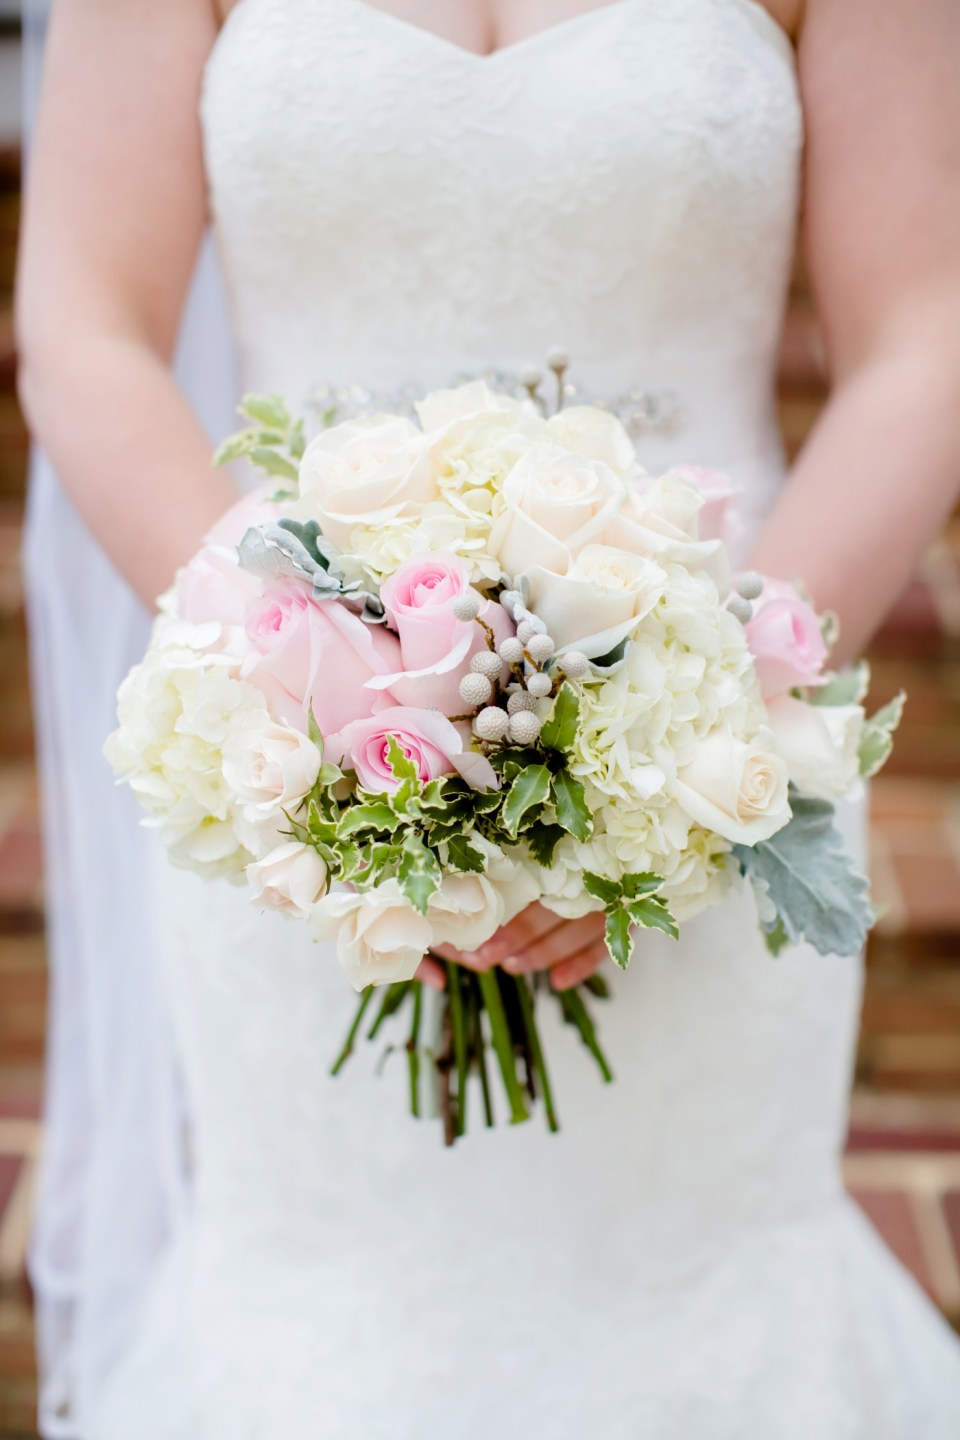 Pink-Wedding-Bouquet-Inspiration-Flowers-Bridal-Bridesmaids427